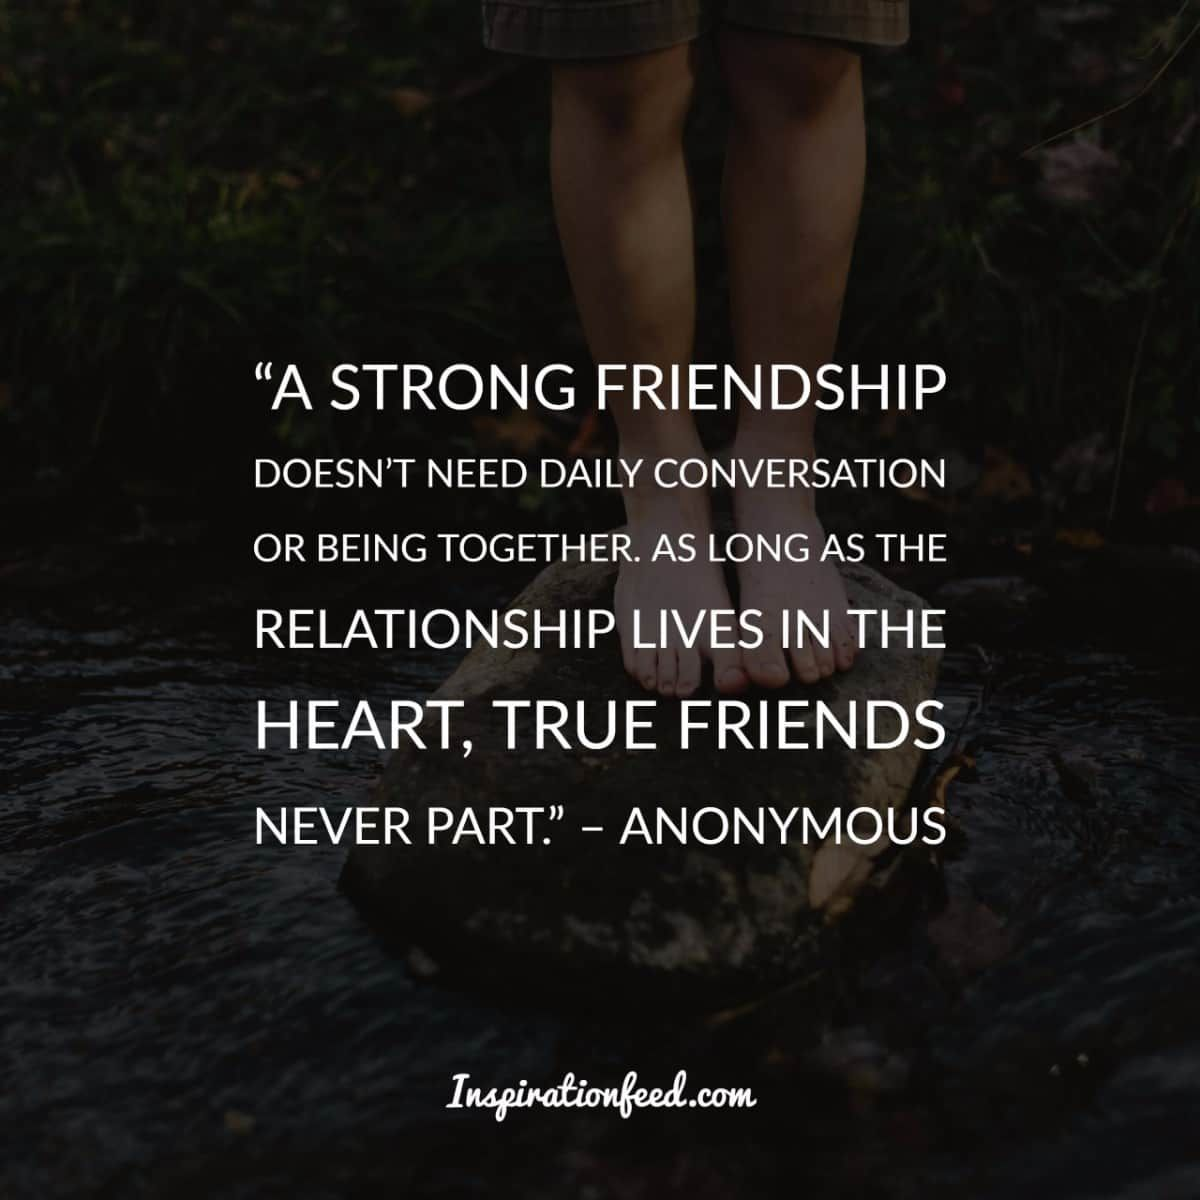 Quotes About Friendship: 40 Friendship Quotes To Celebrate Your...